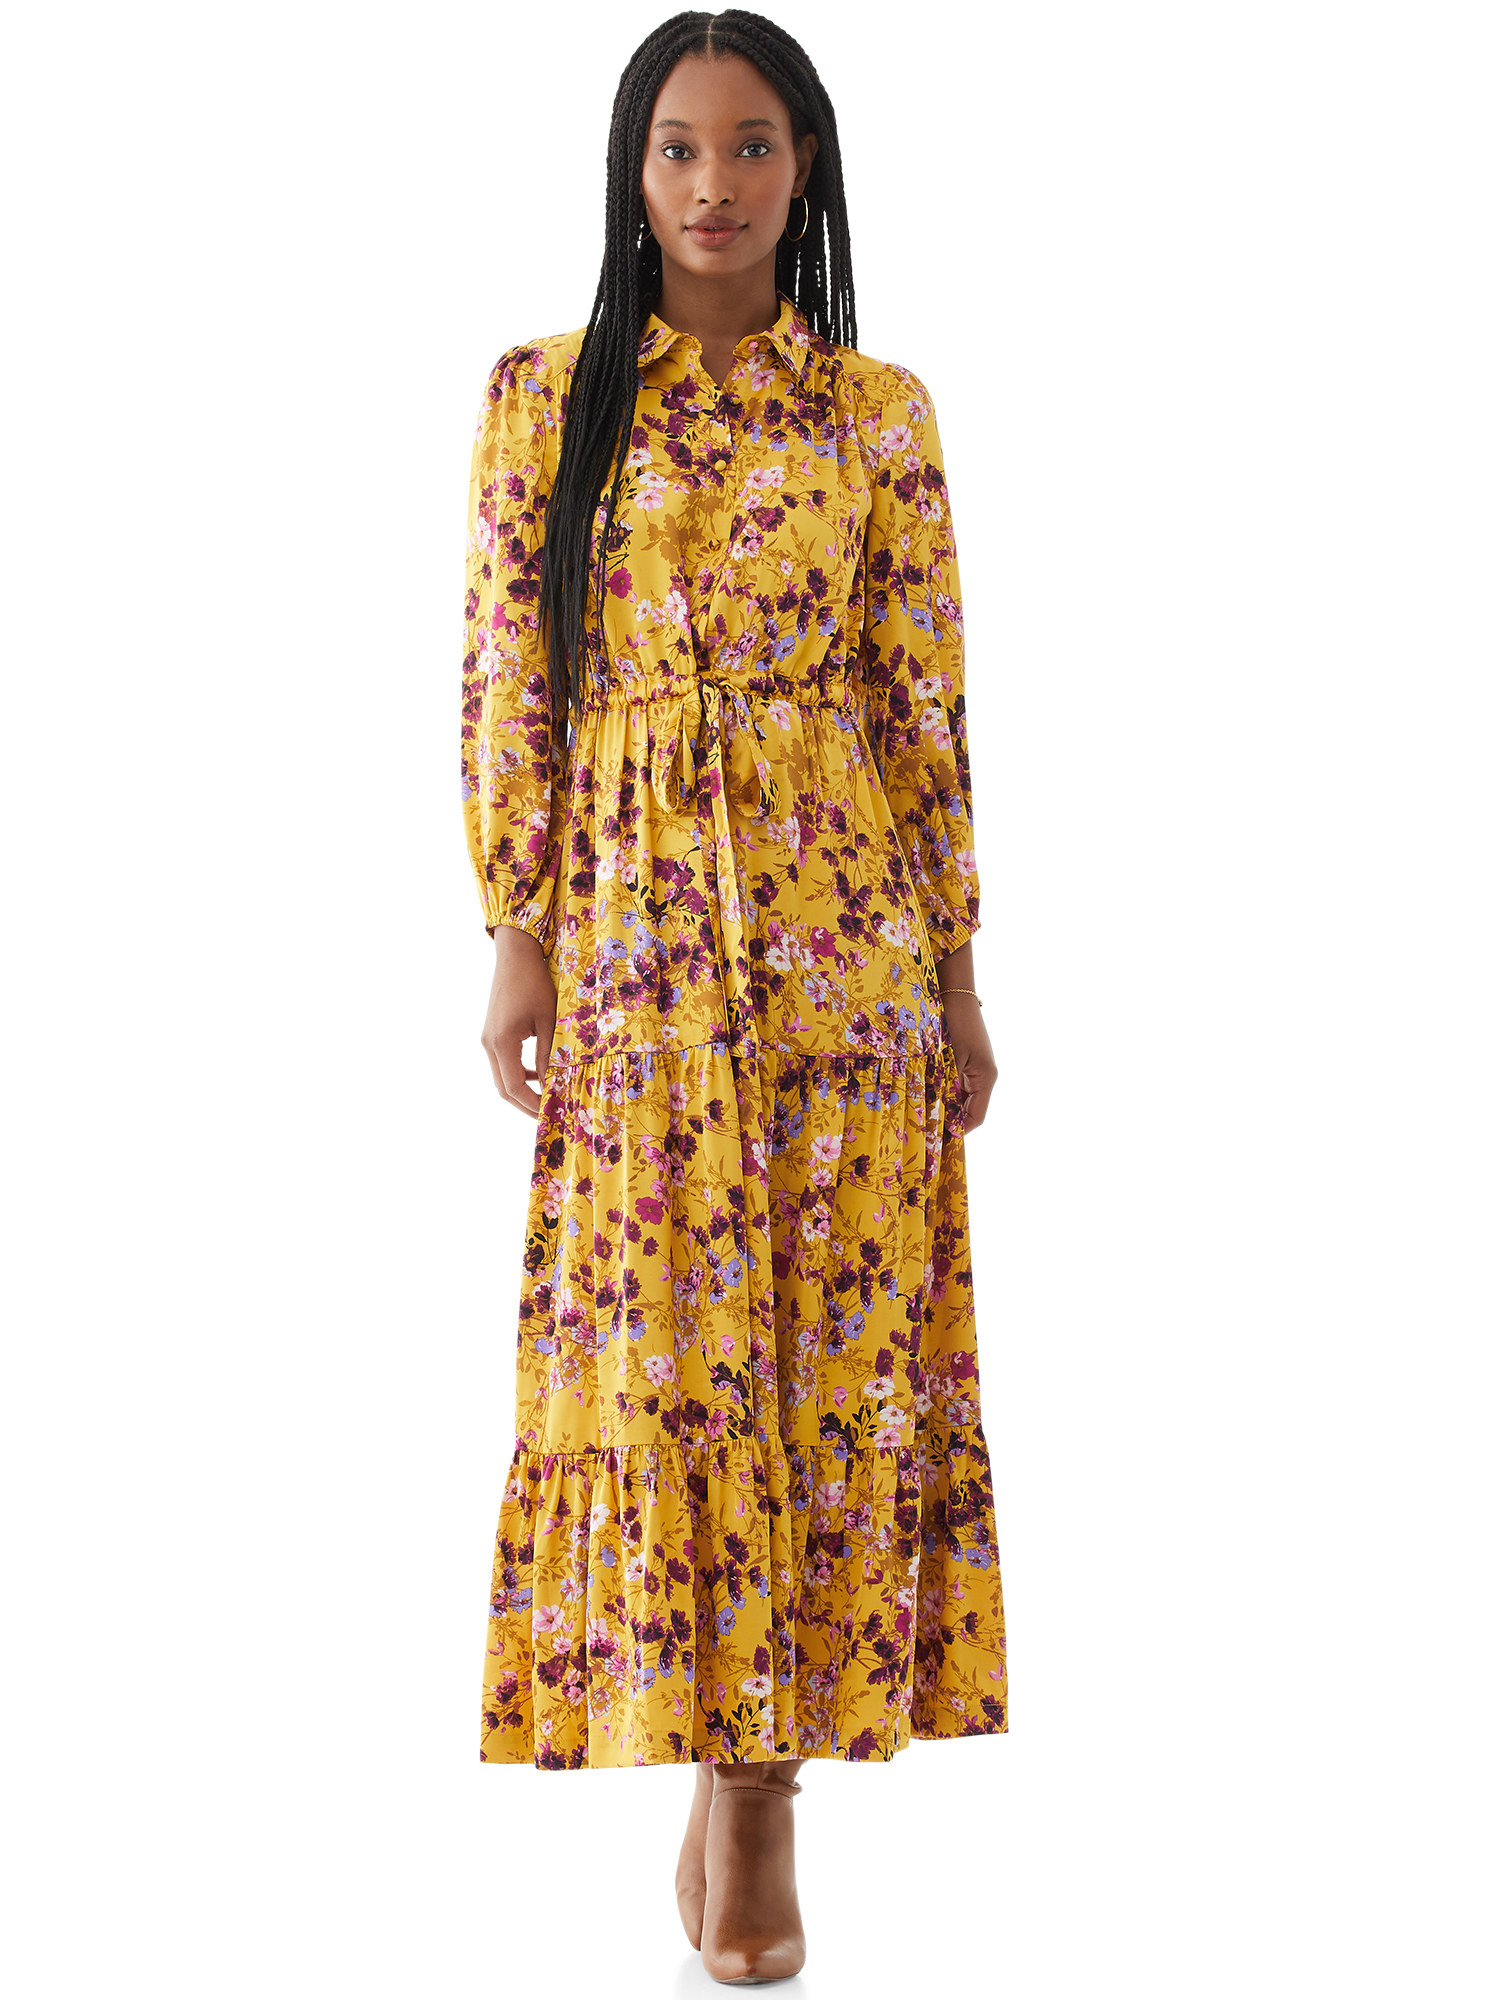 Mustard and wine-colored maxi dress